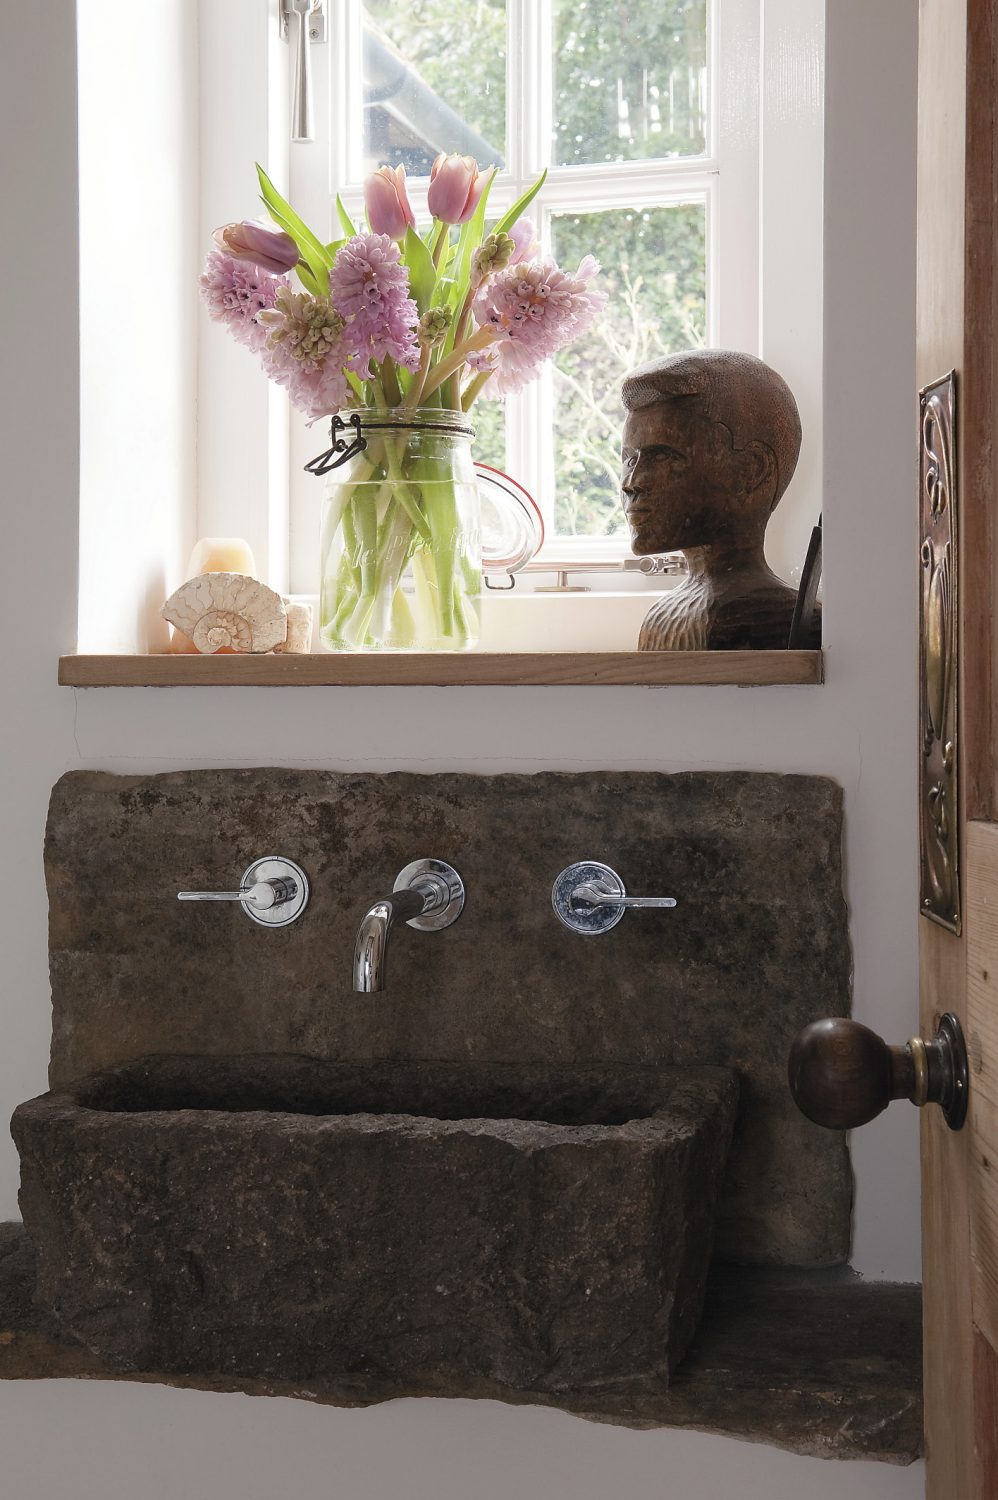 the basin in the downstairs loo was adapted from an old bird feeder